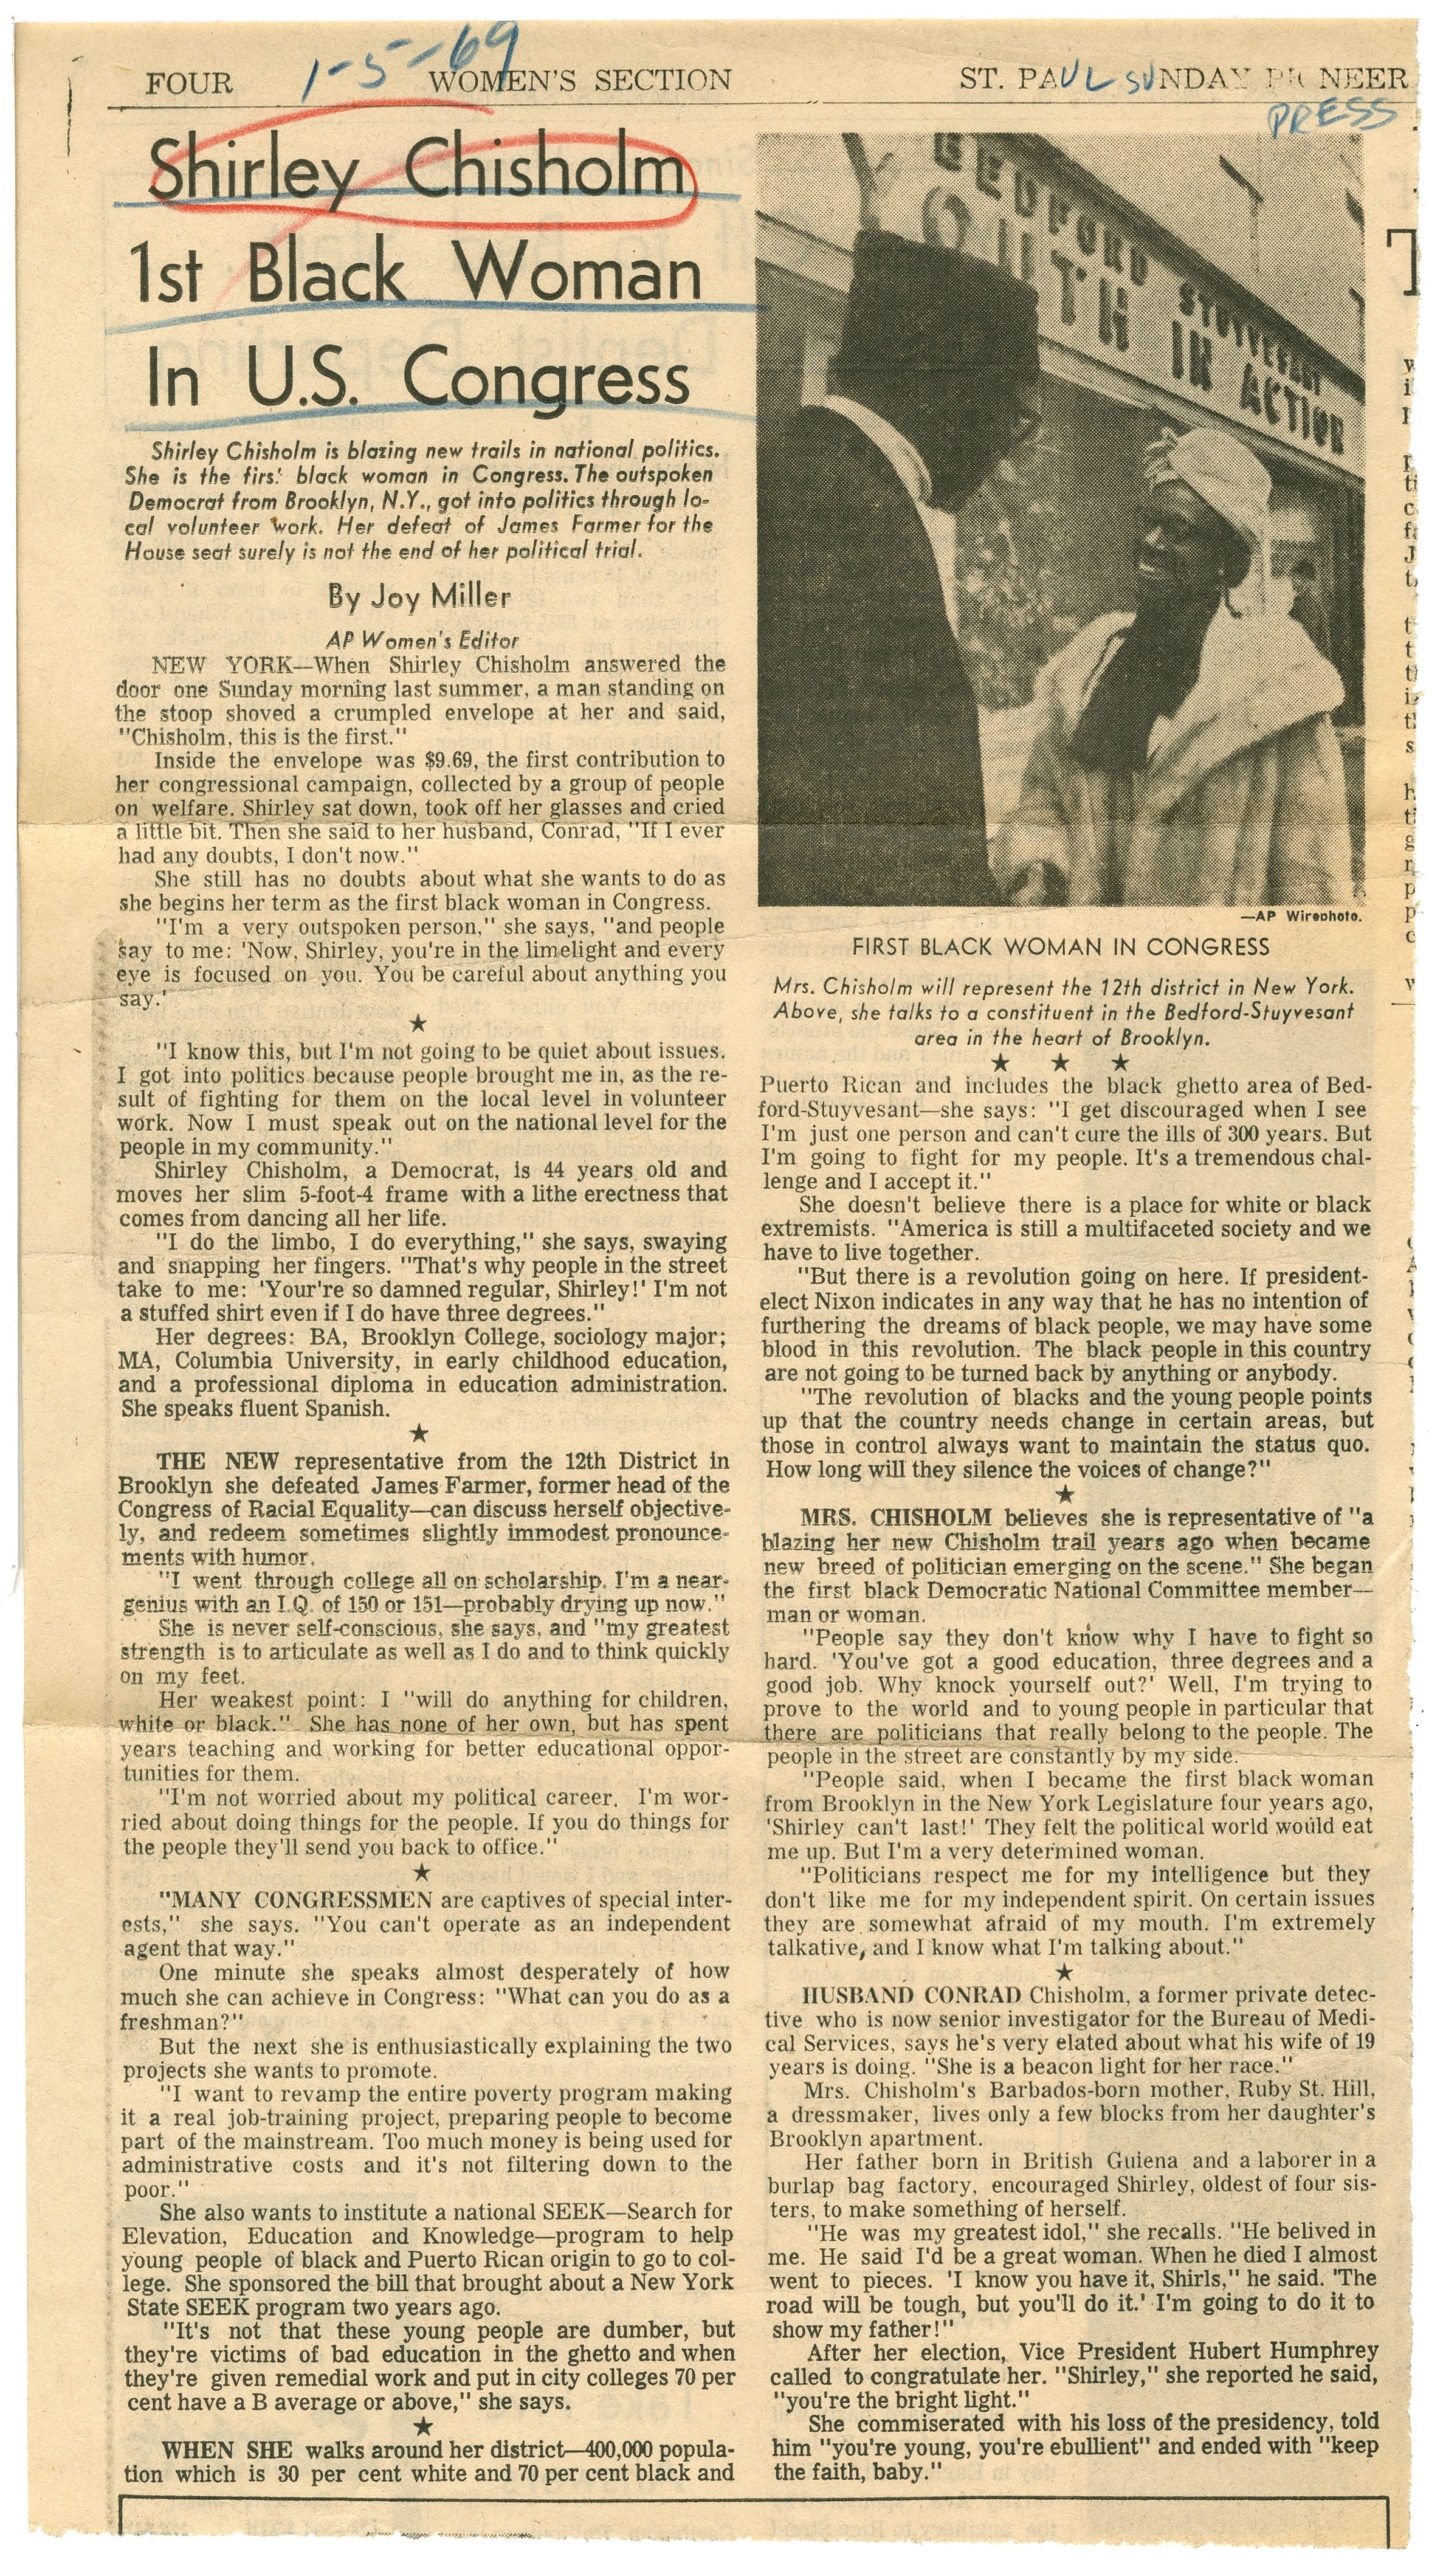 Shirley Chisholm 1st Black Woman in U.S. Congress, Joy Miller; St. Paul Sunday Pioneer, 1969 January 5, Johnson Publishing Company Clippings File Collection